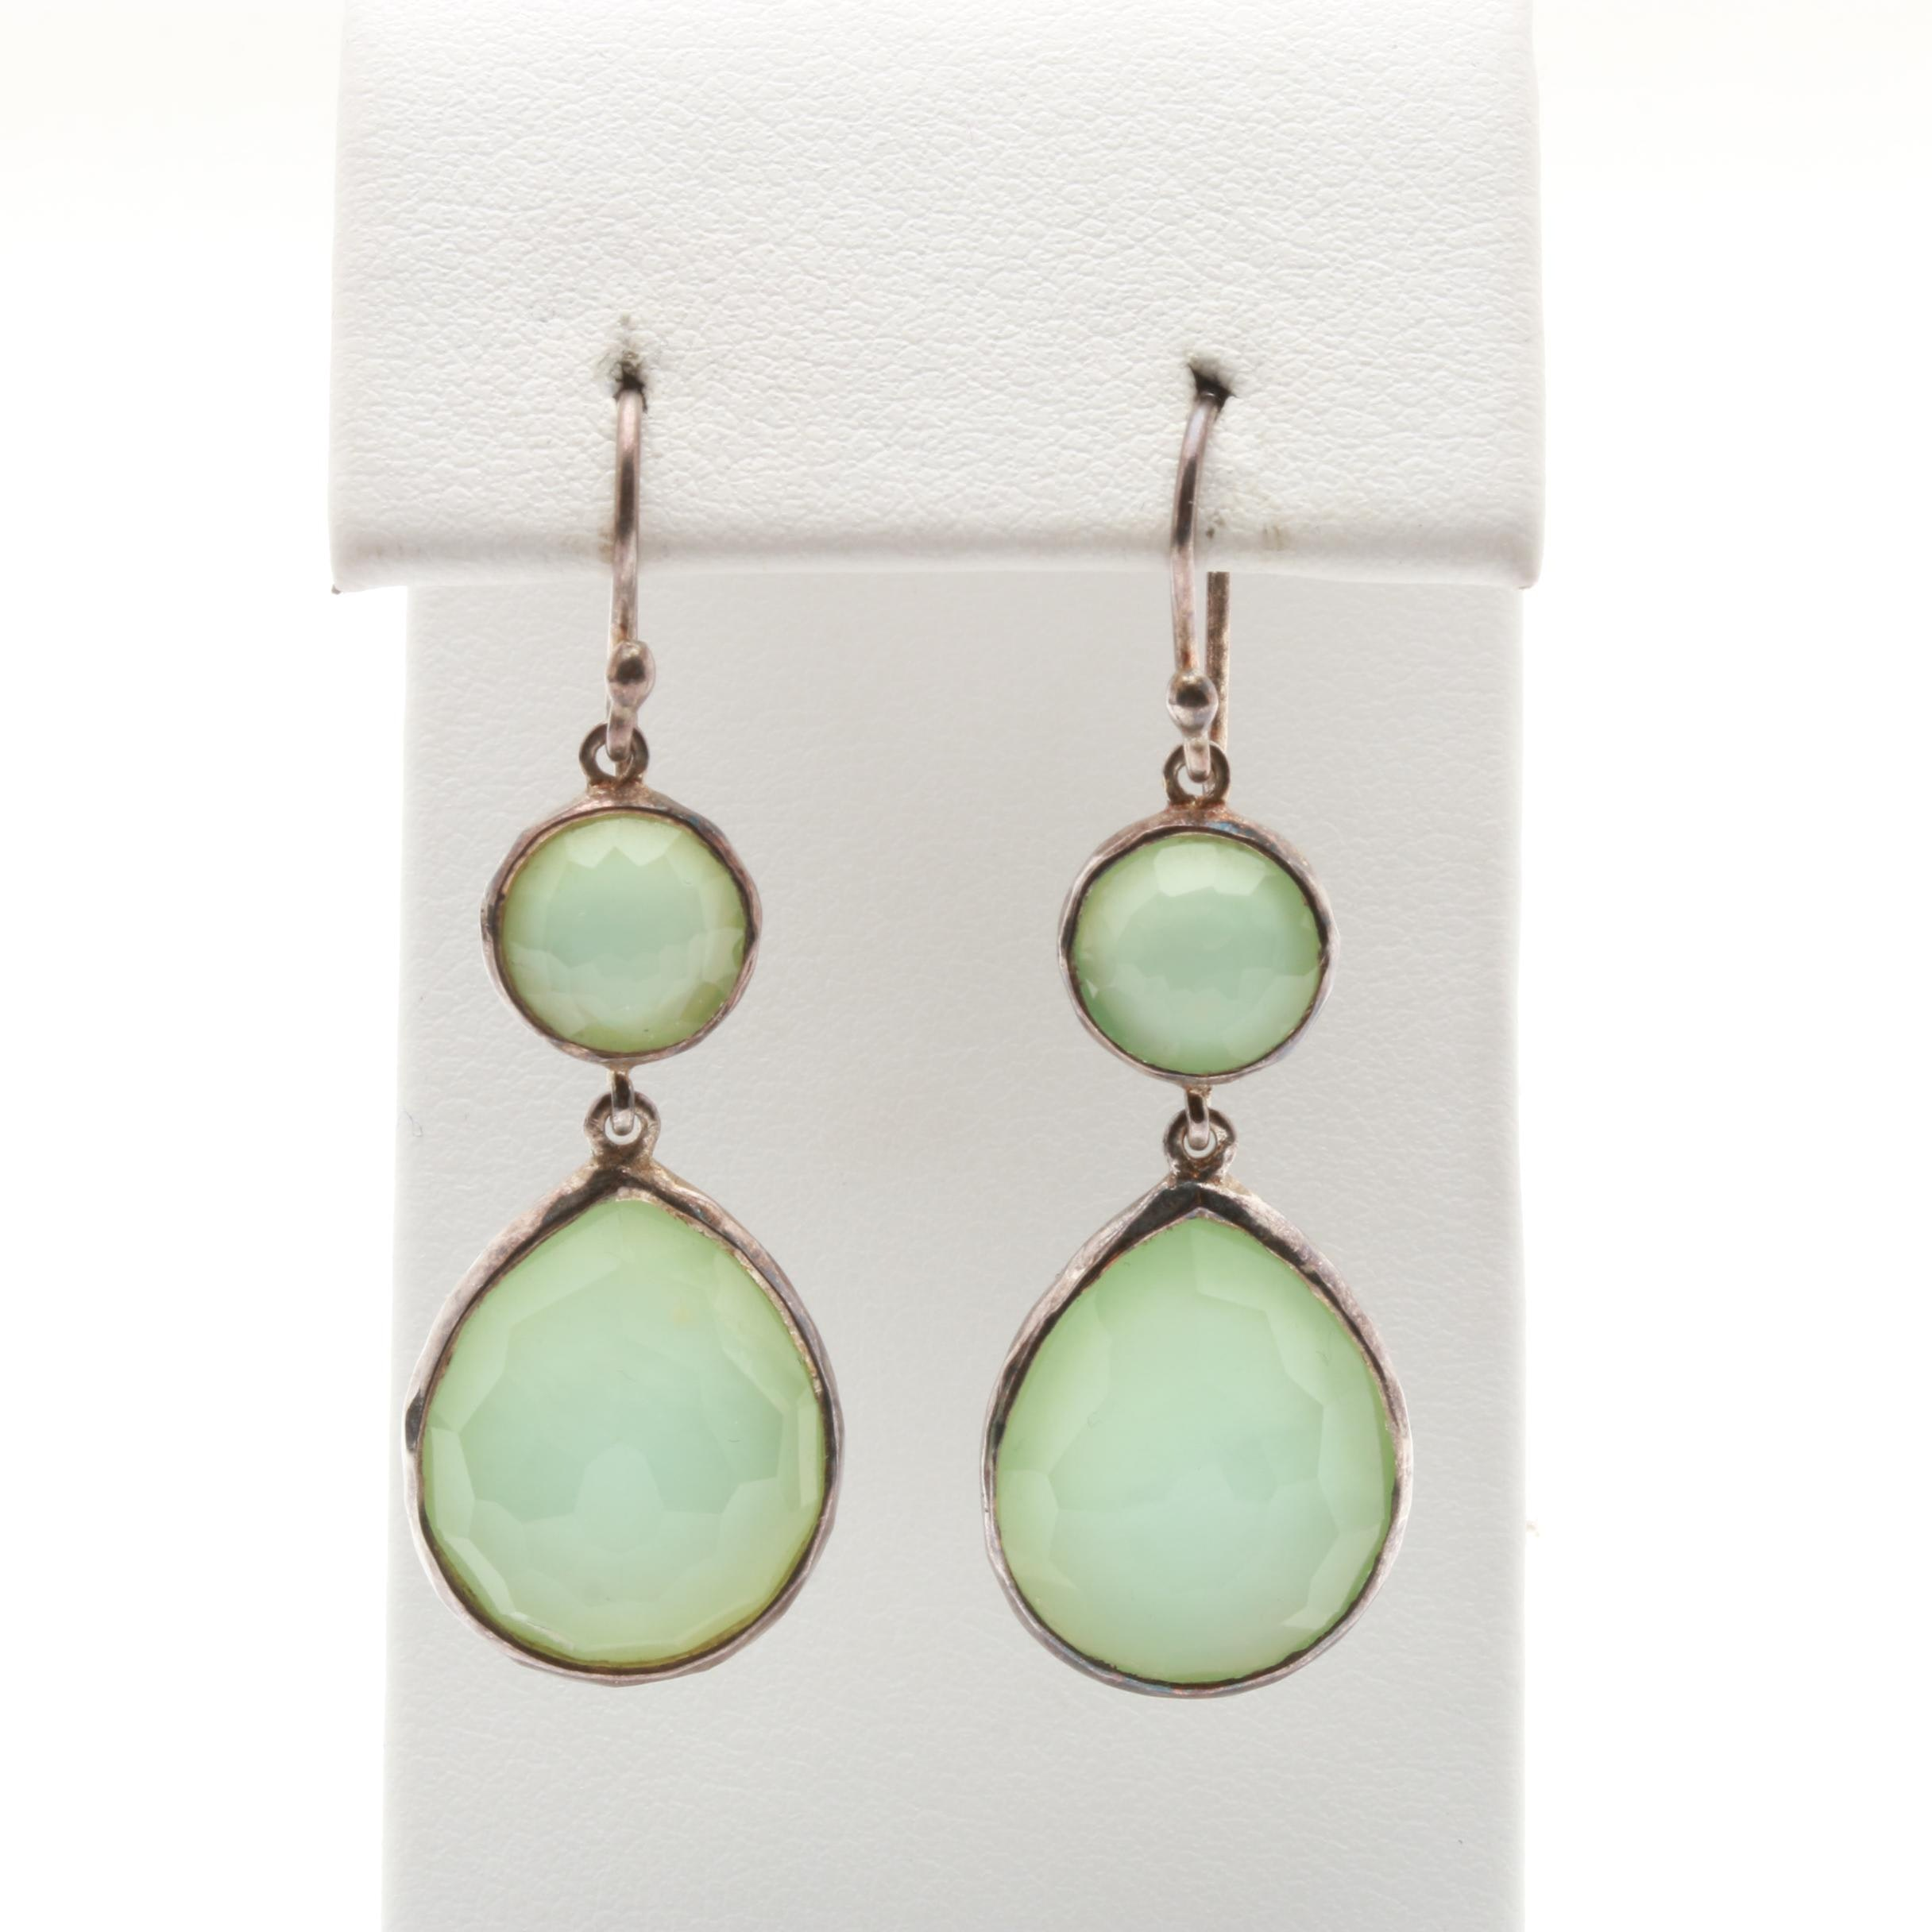 Ippolita Sterling Silver Quartz and Mother of Pearl Doublet Dangle Earrings